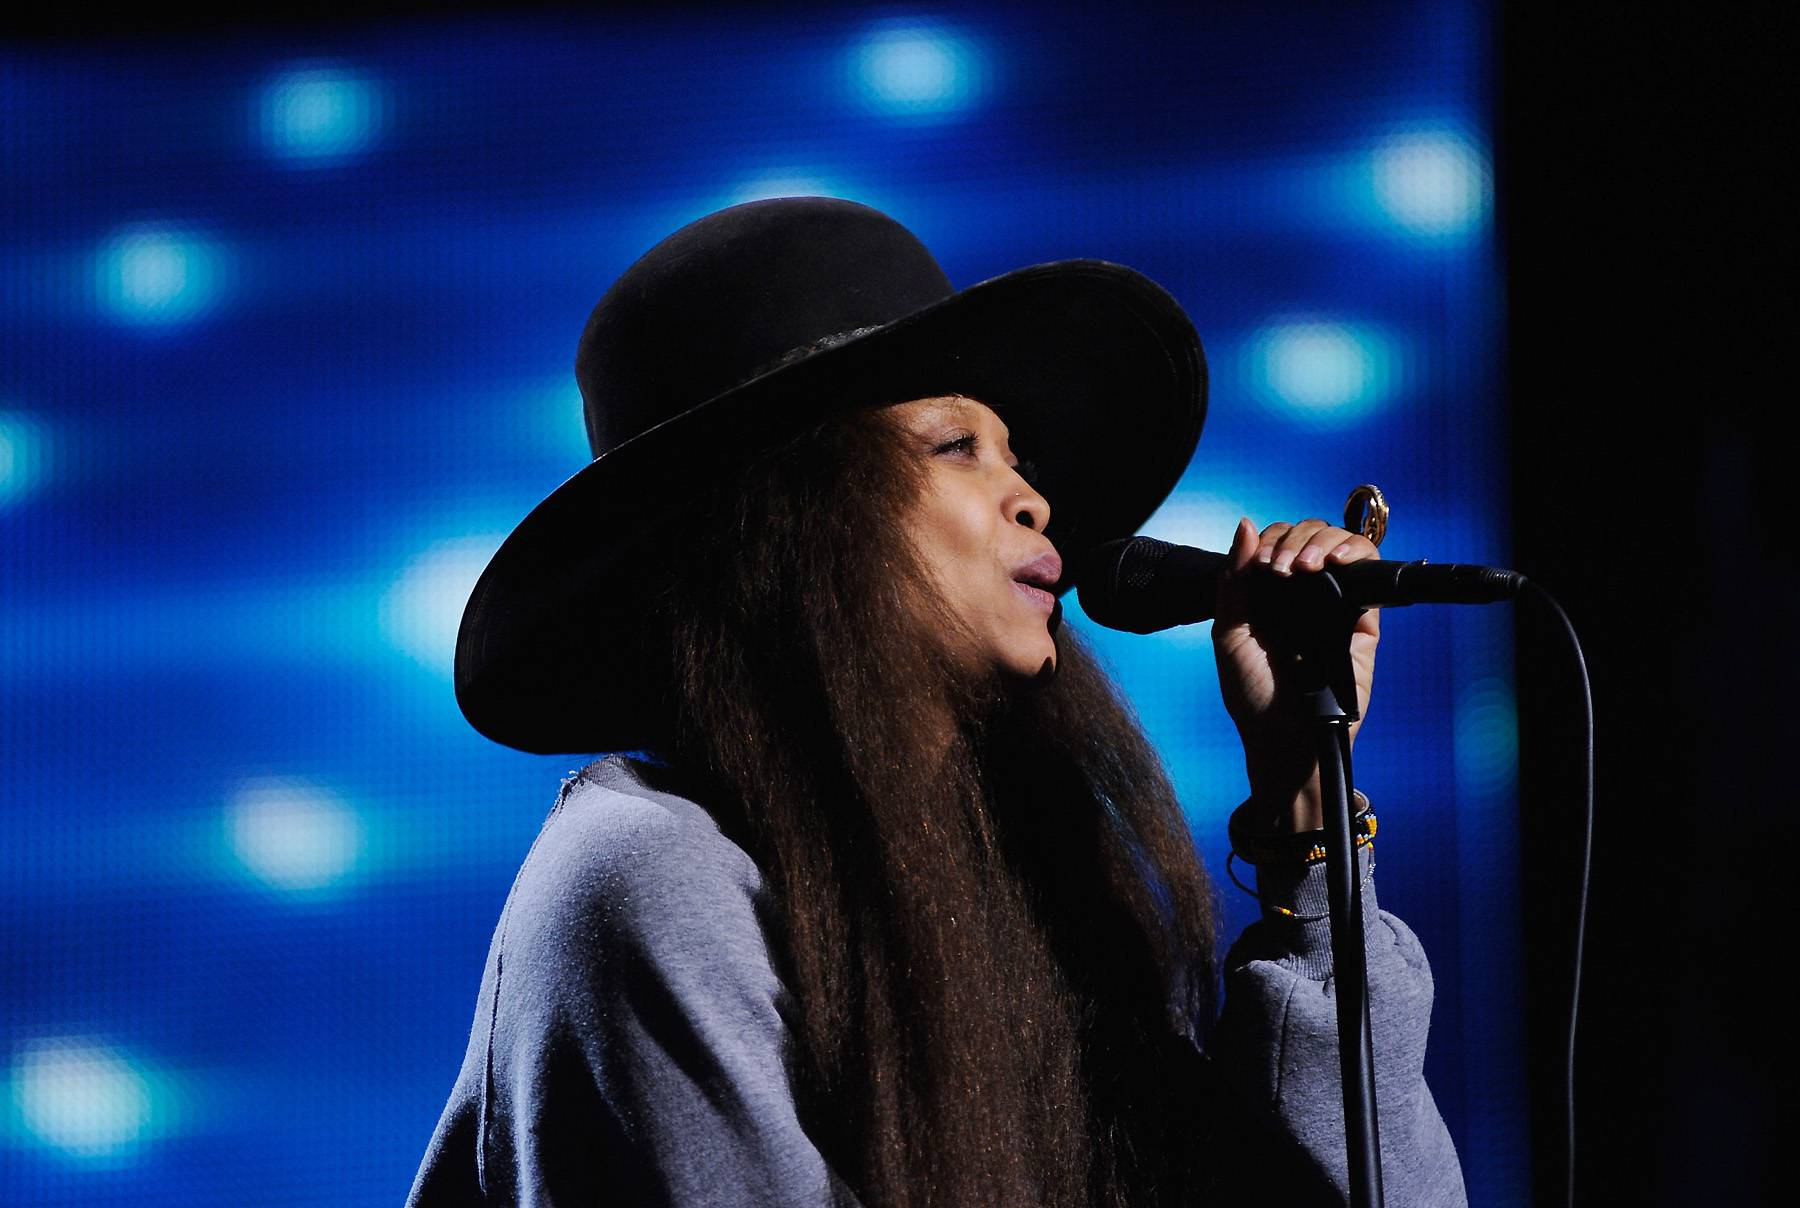 Erykah Badu Sings for Change - Erykah Badu randomly hit the NYC streets to sing for change. The 43-year-old singer said she was always curious about what it would be like to sing for change so she made it happen. The entire experiment was filmed as Badu freestyled a song. After a little over 41 minutes, she ended up only making $3.60. Watch it in actionhere.   (Photo: Kris Connor/Getty Images for BET)